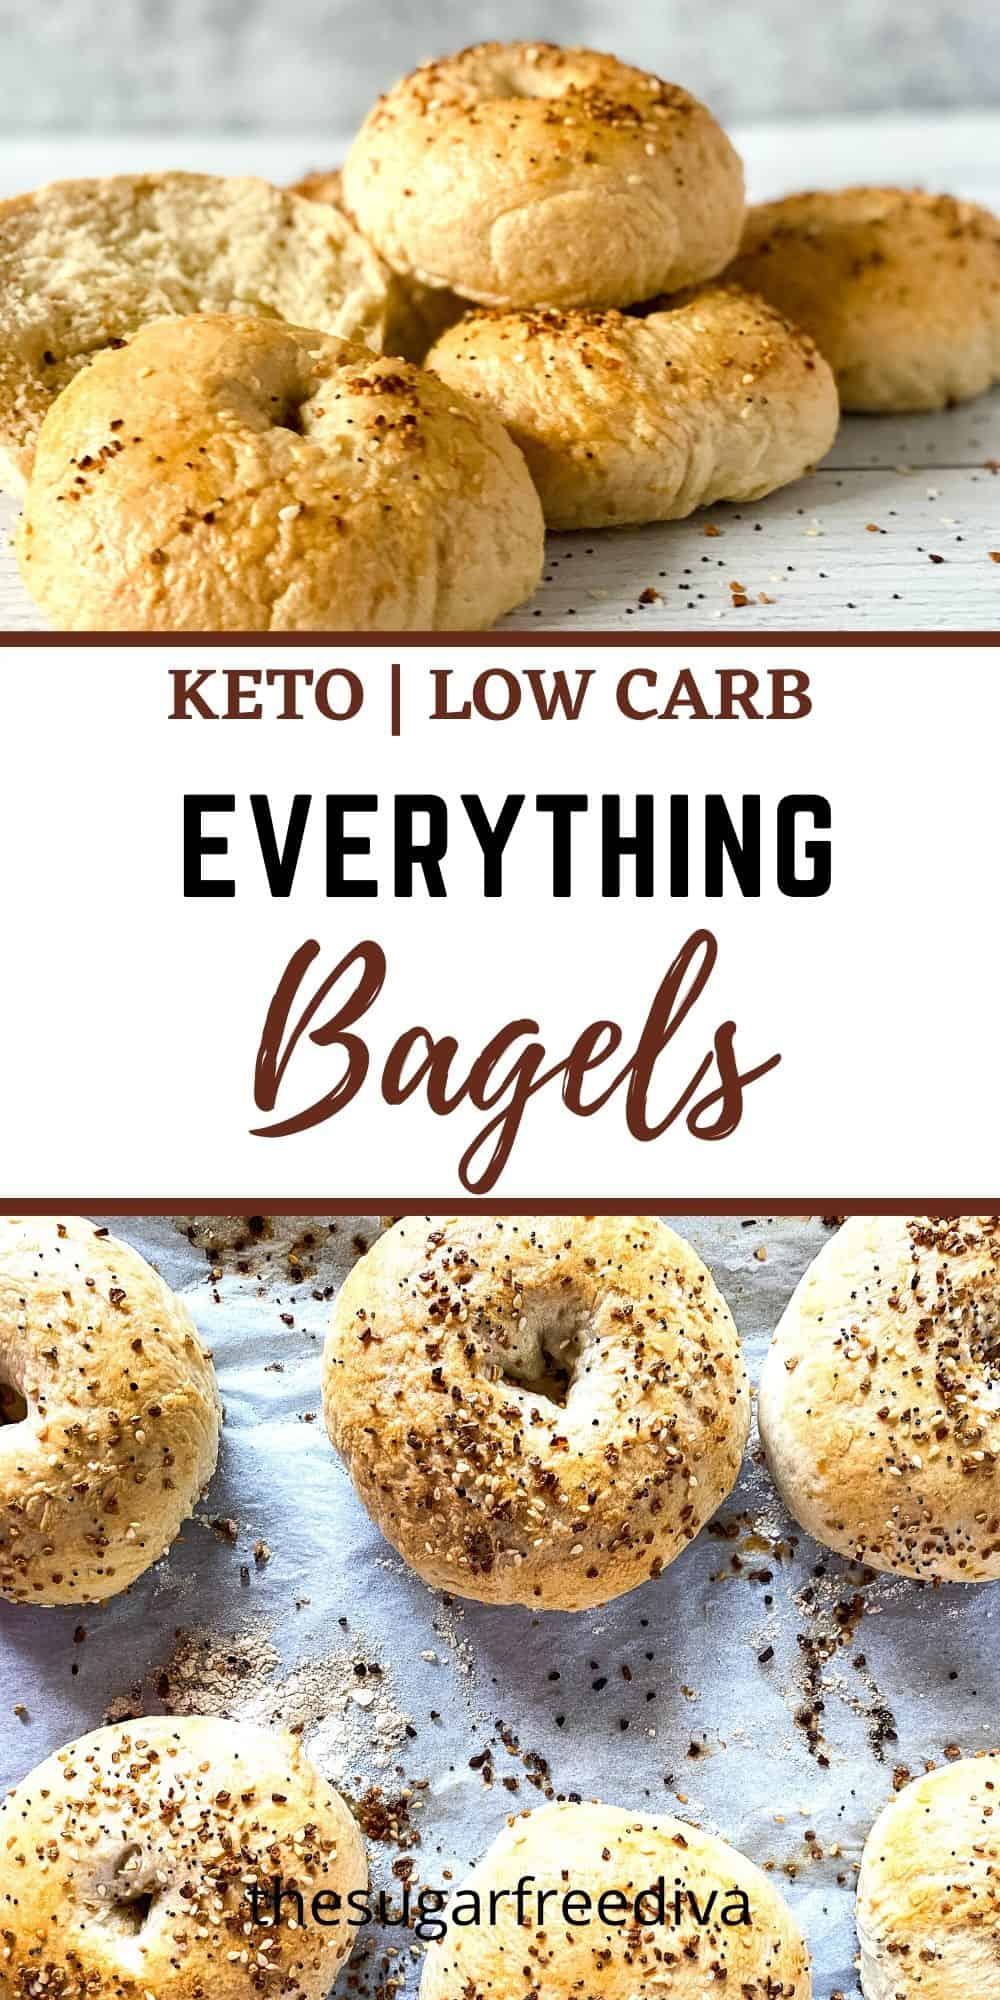 Keto Low Carb Everything Bagels